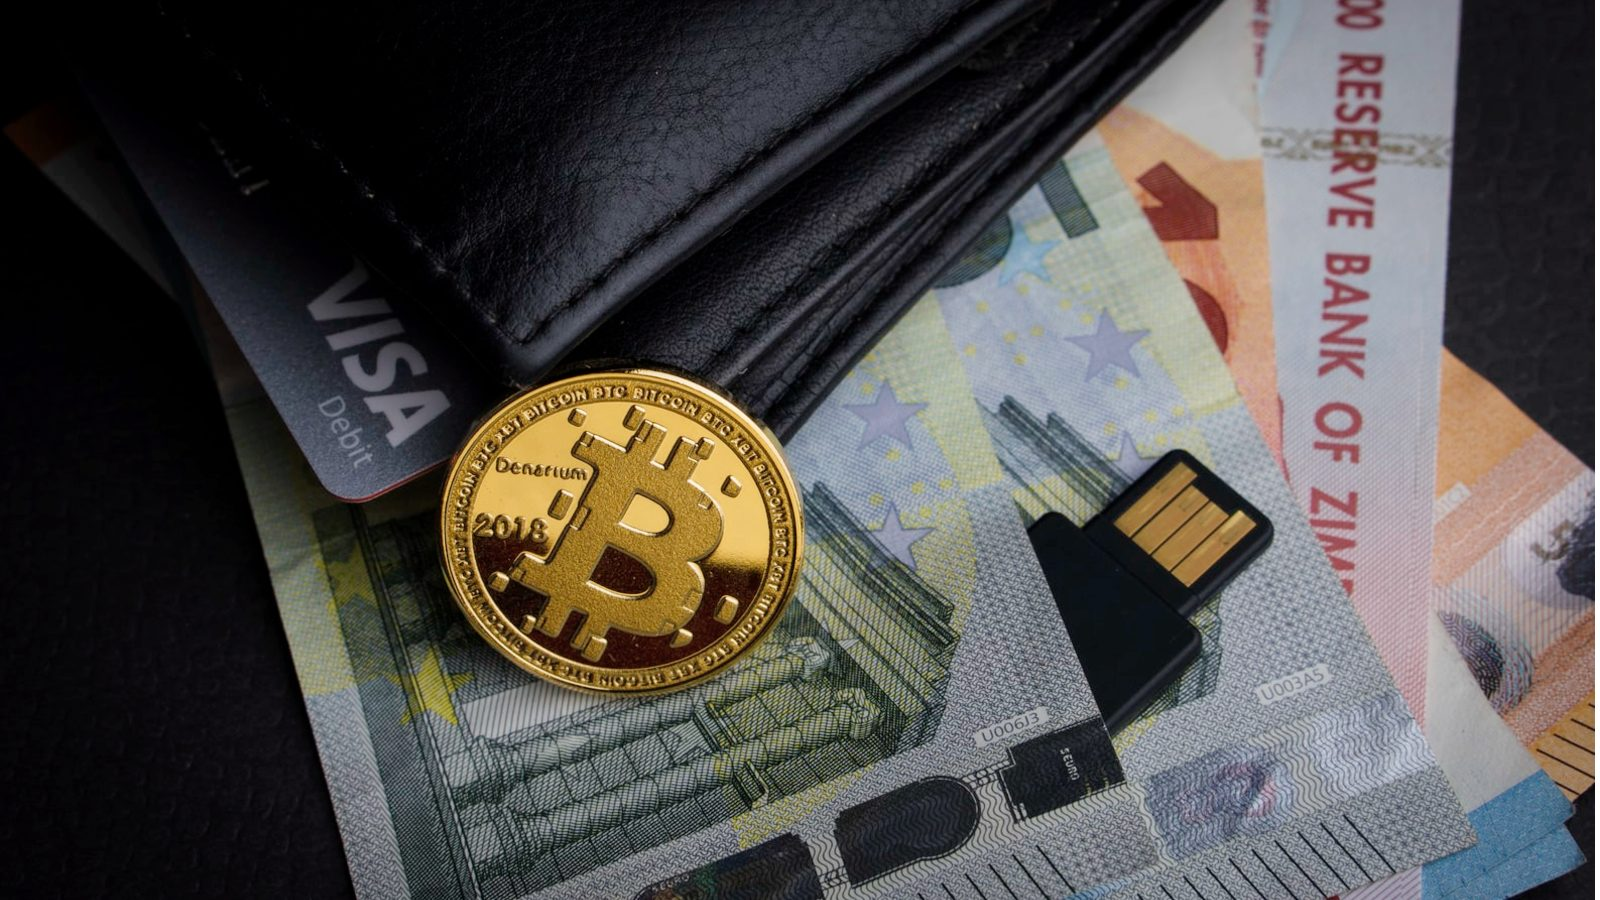 Helix bitcoin mixer operator pleads guilty to laundering $300m